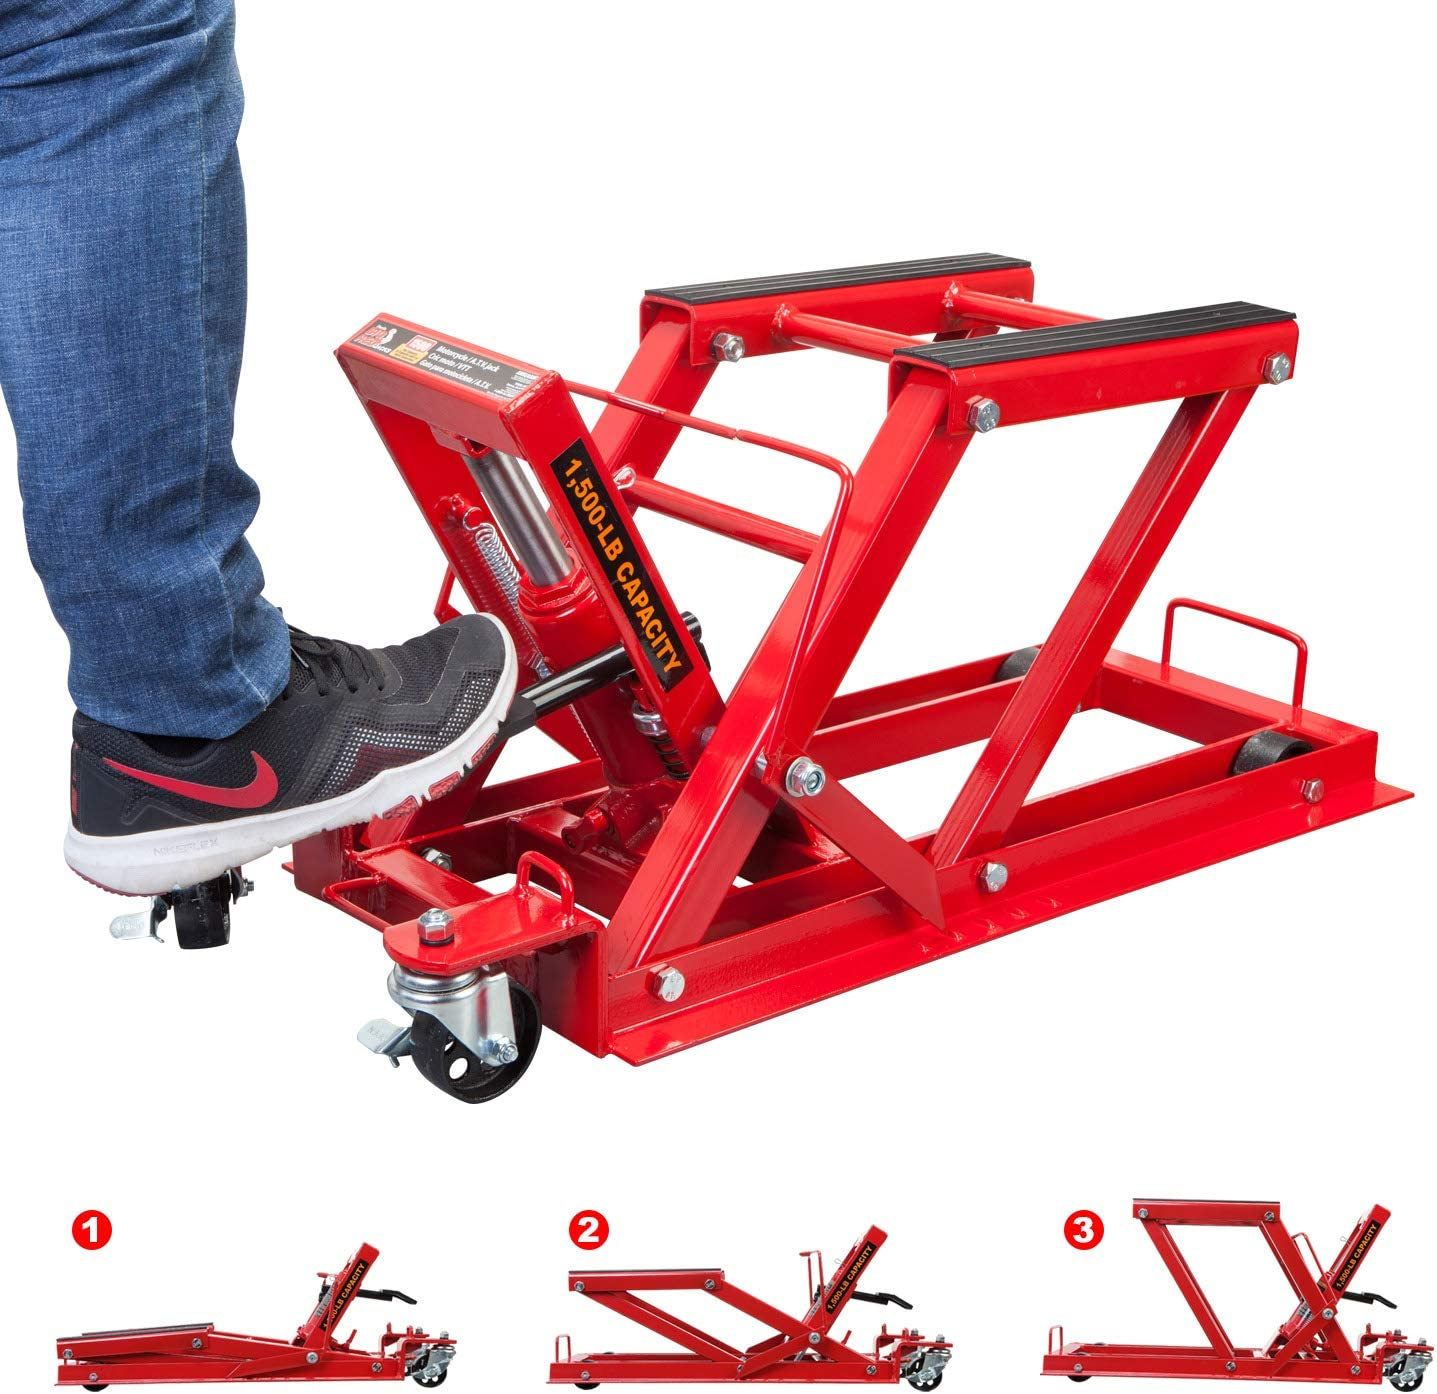 Torin Big Red Motorcycle Capacity T64017 1,500 lb 3//4 Ton ATV Jack